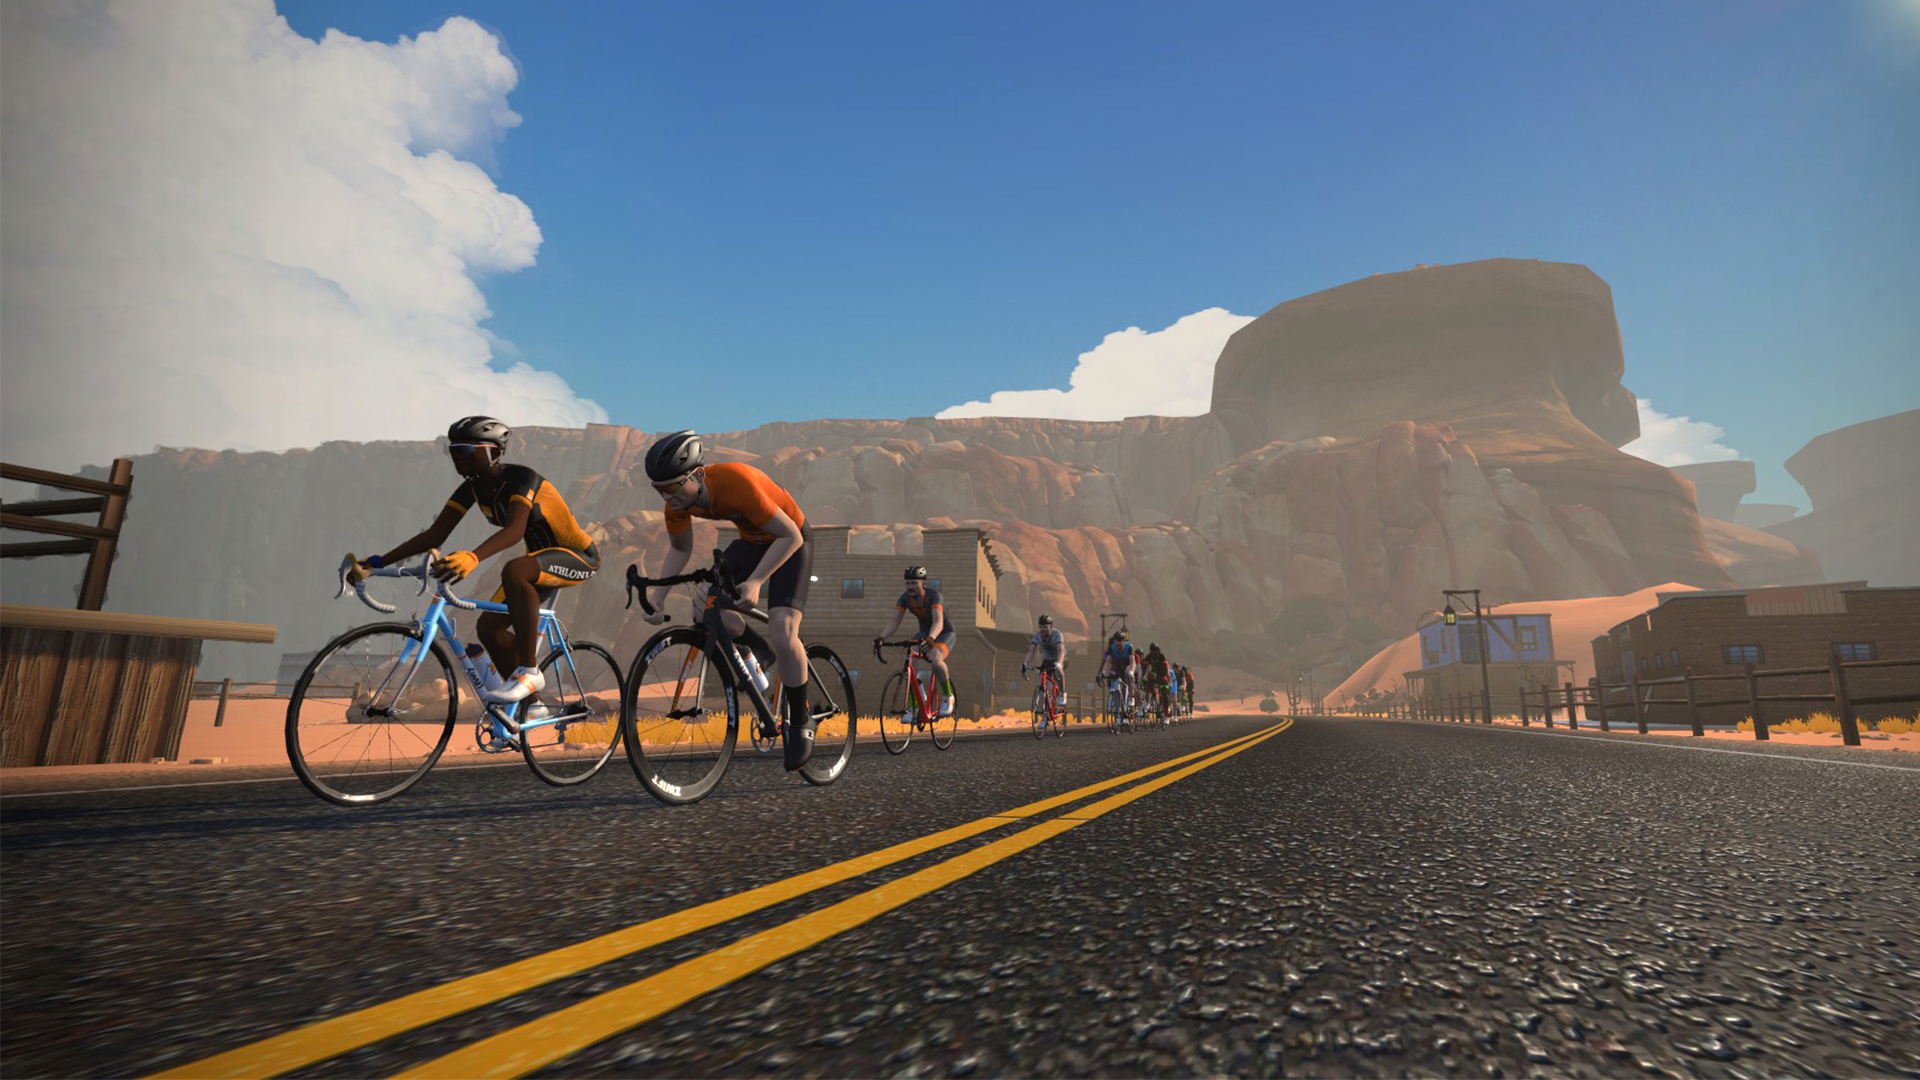 Zwift expands with Fuego Flats Desert | Road Bike News, Reviews, and